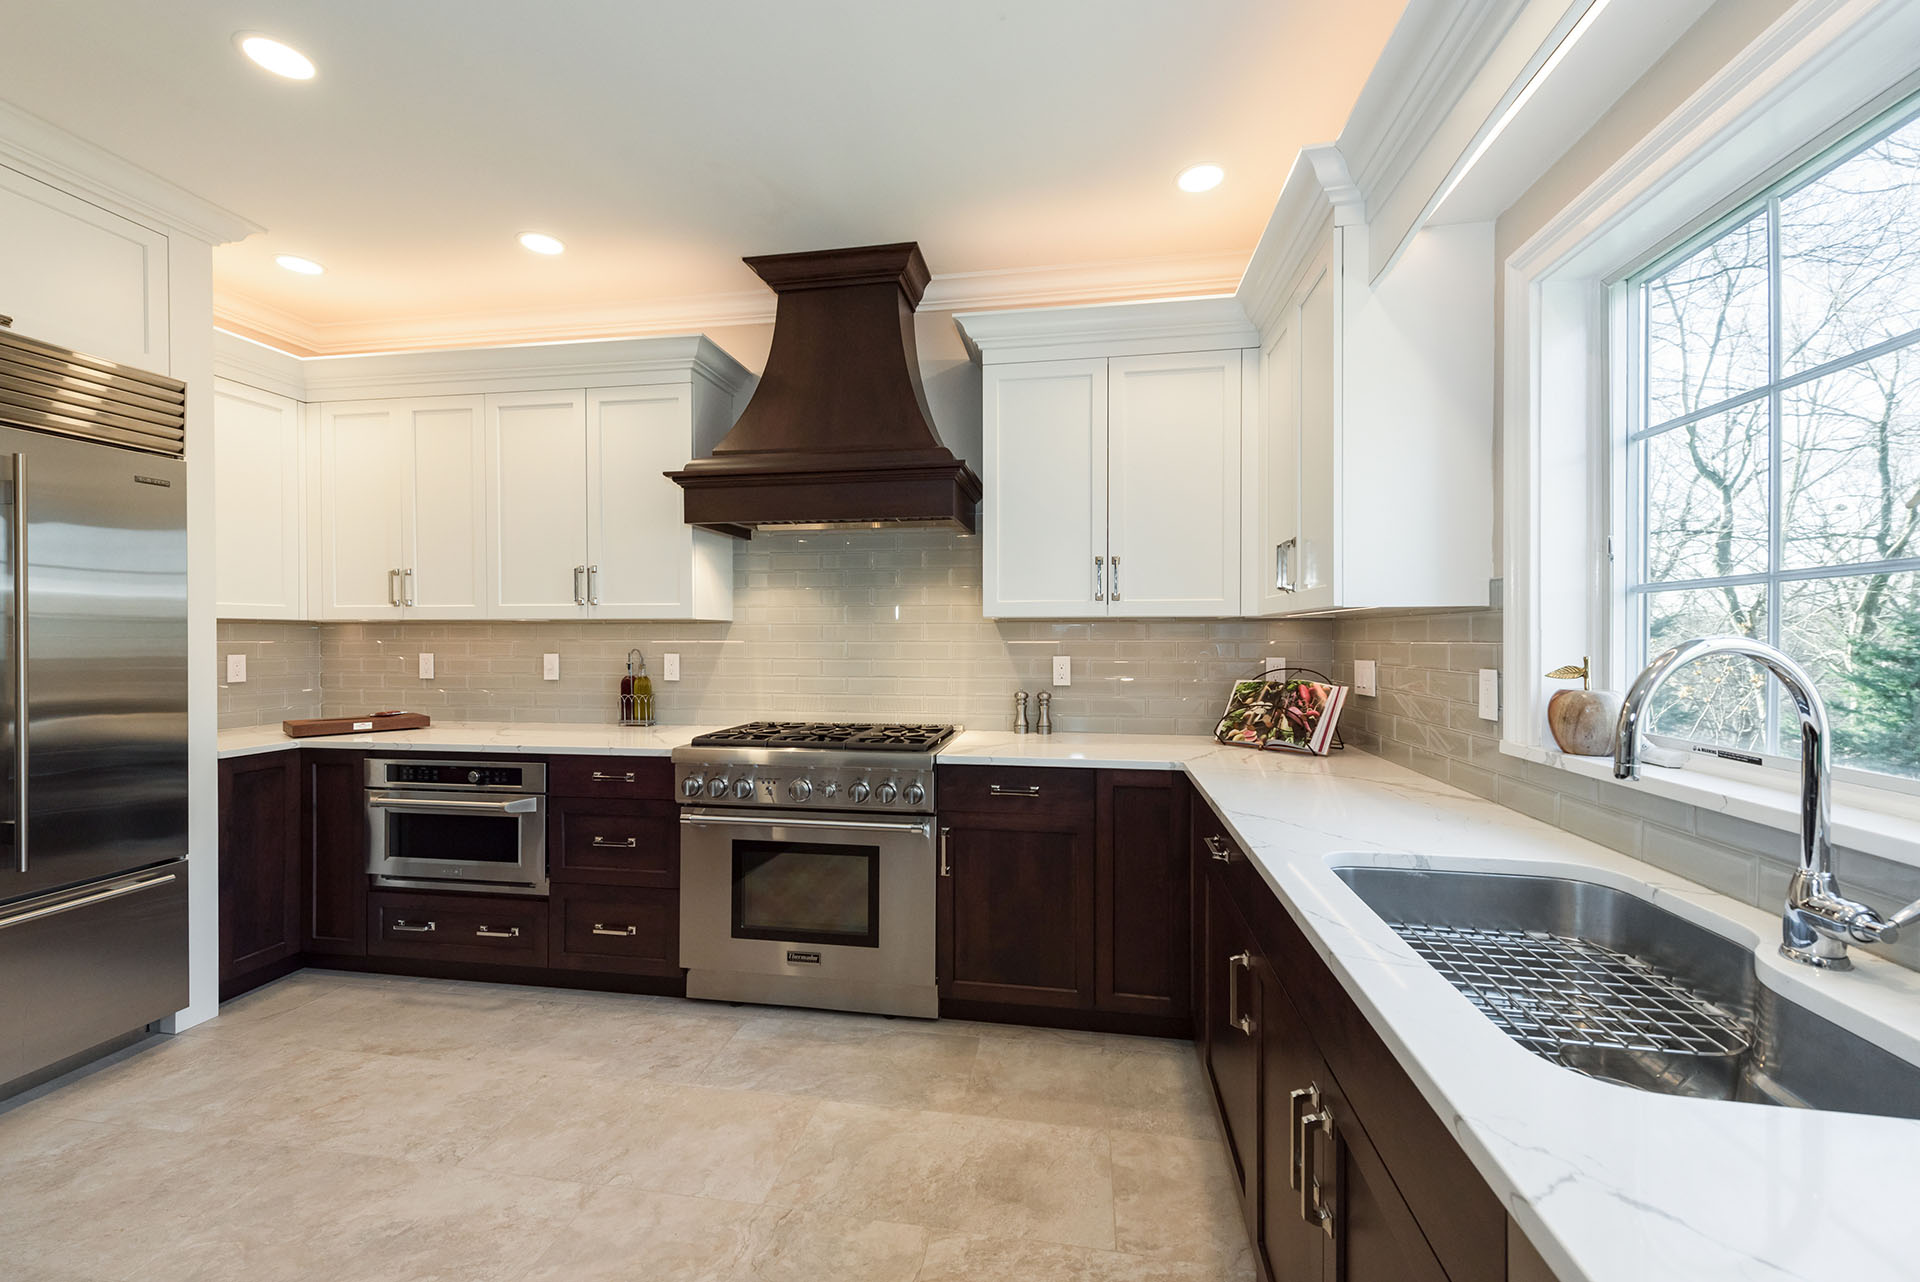 kitchen designed by Joan Bigg kitchen choreography kitchen design Kountry Kraft Cabinetry ny metro area